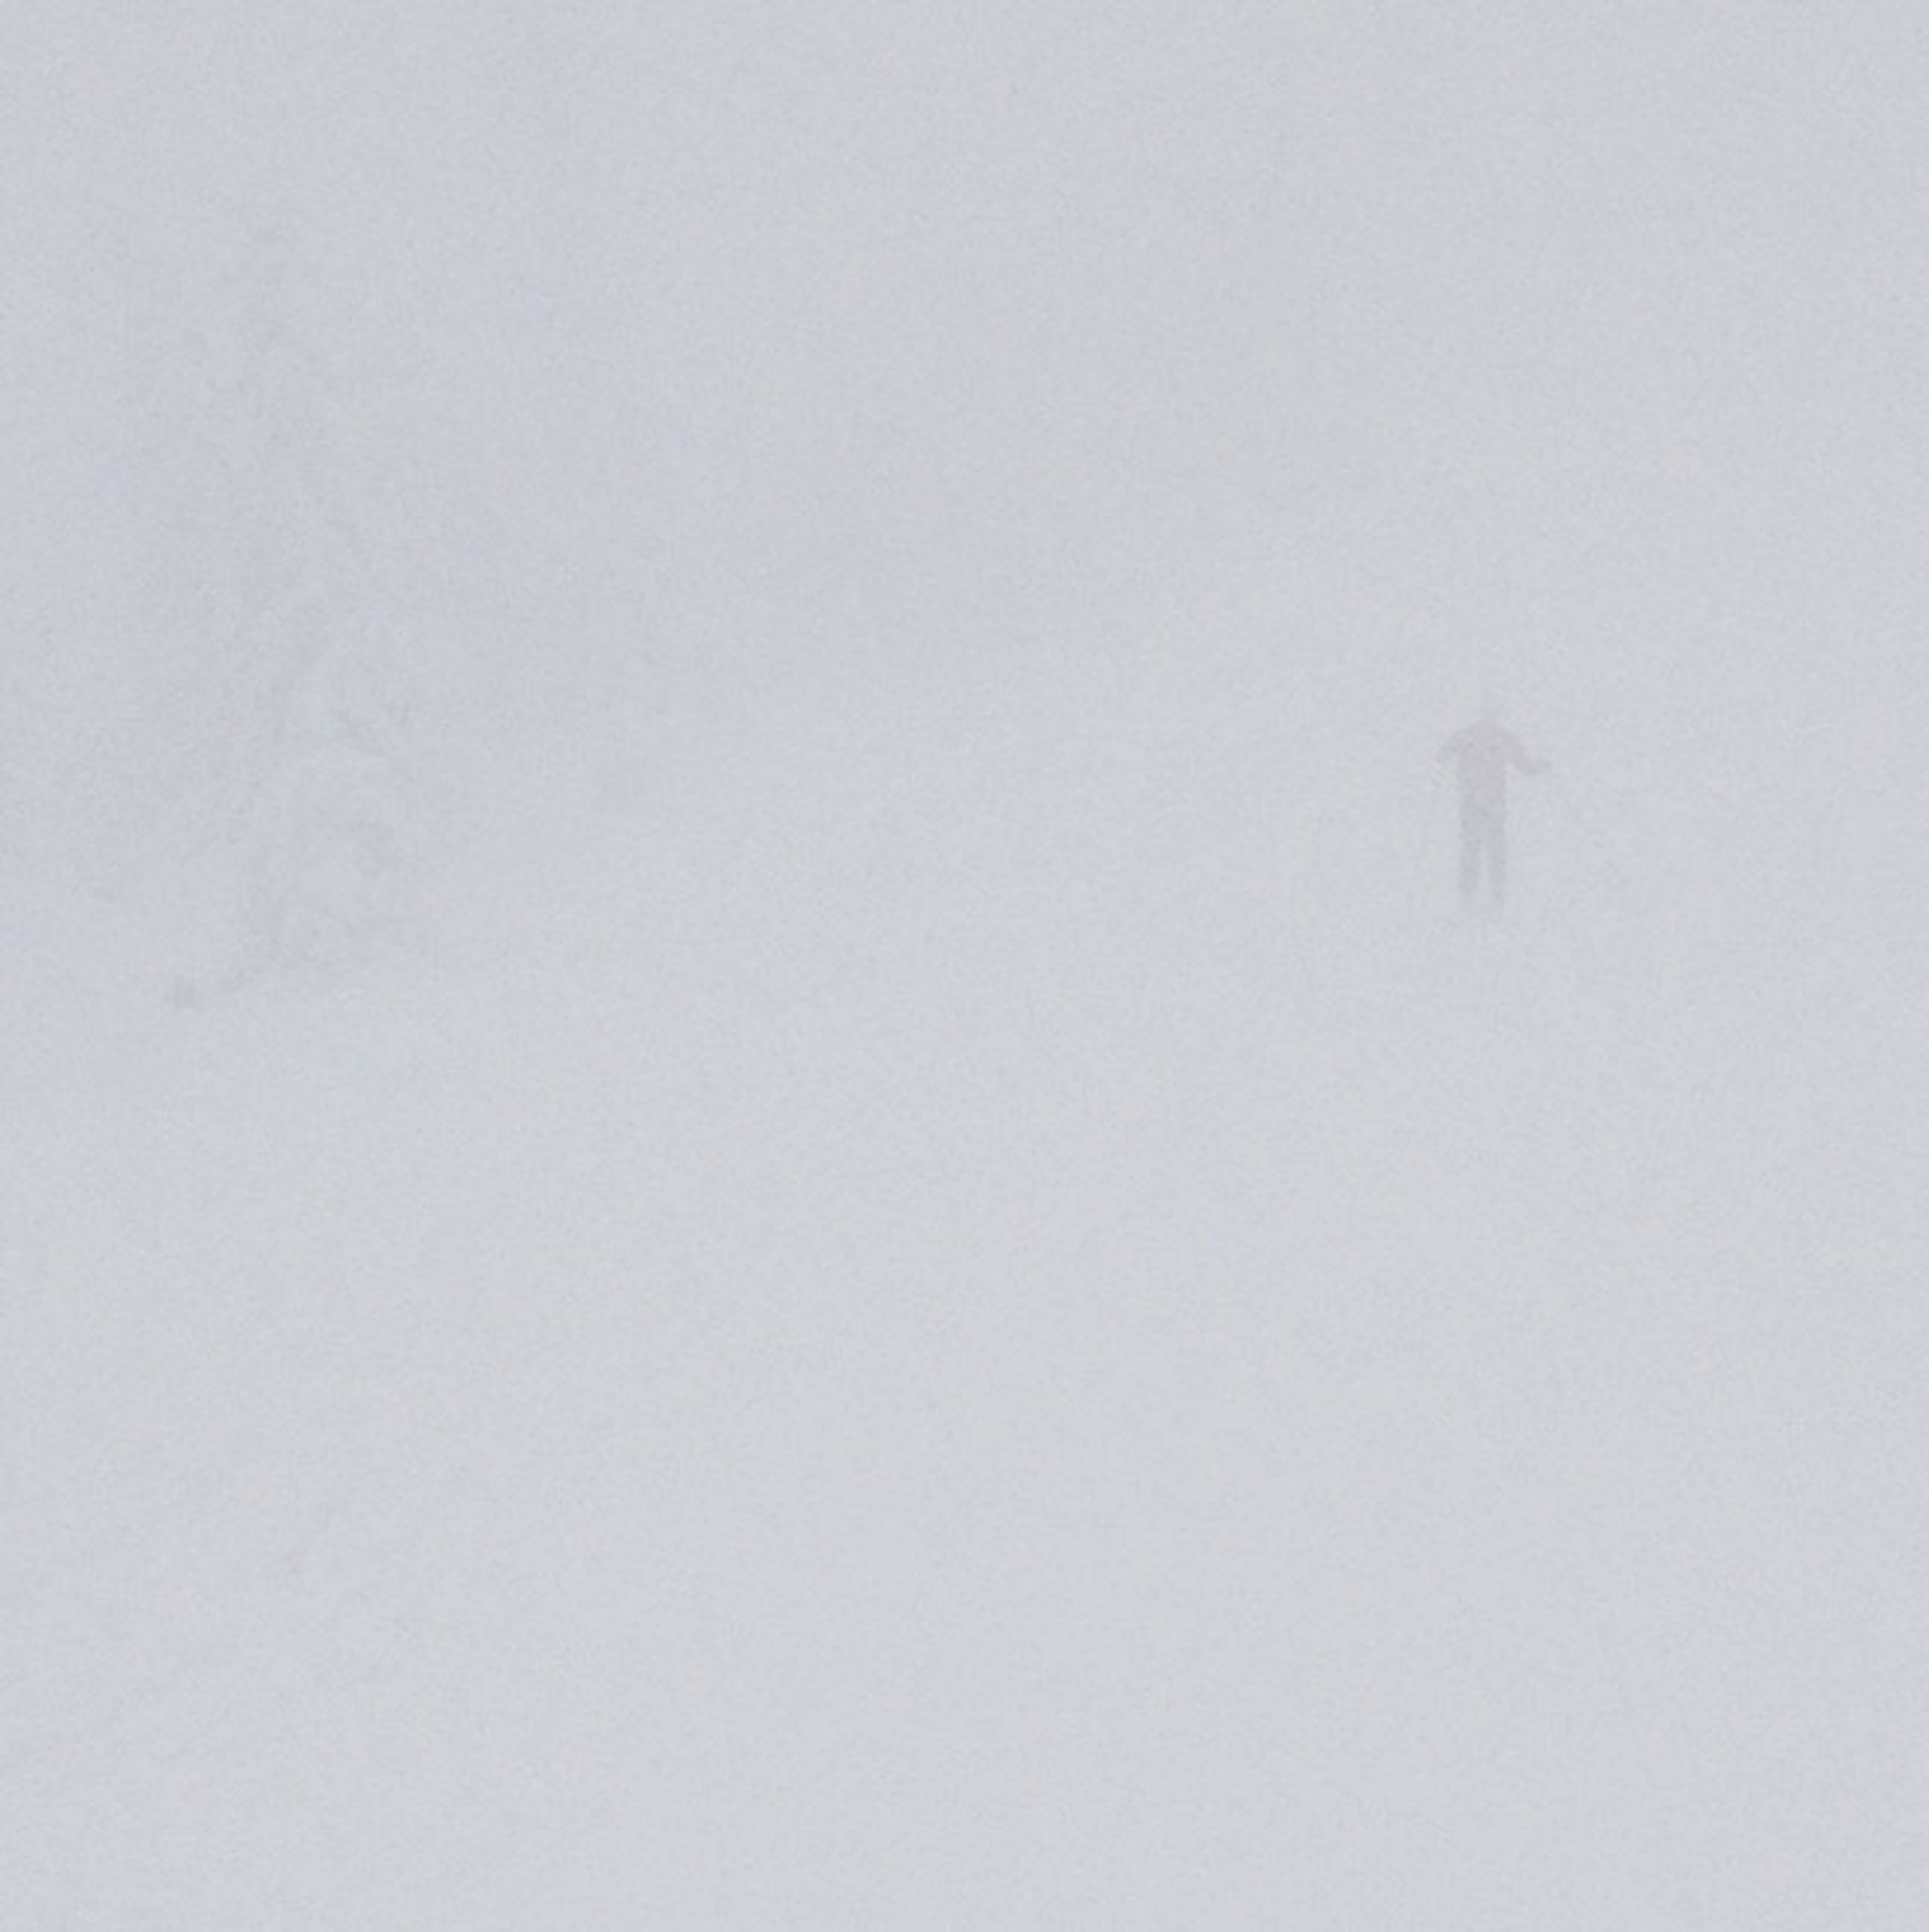 copy space, fog, foggy, weather, white background, white color, winter, cold temperature, season, built structure, snow, architecture, no people, tranquility, nature, covering, studio shot, day, wall - building feature